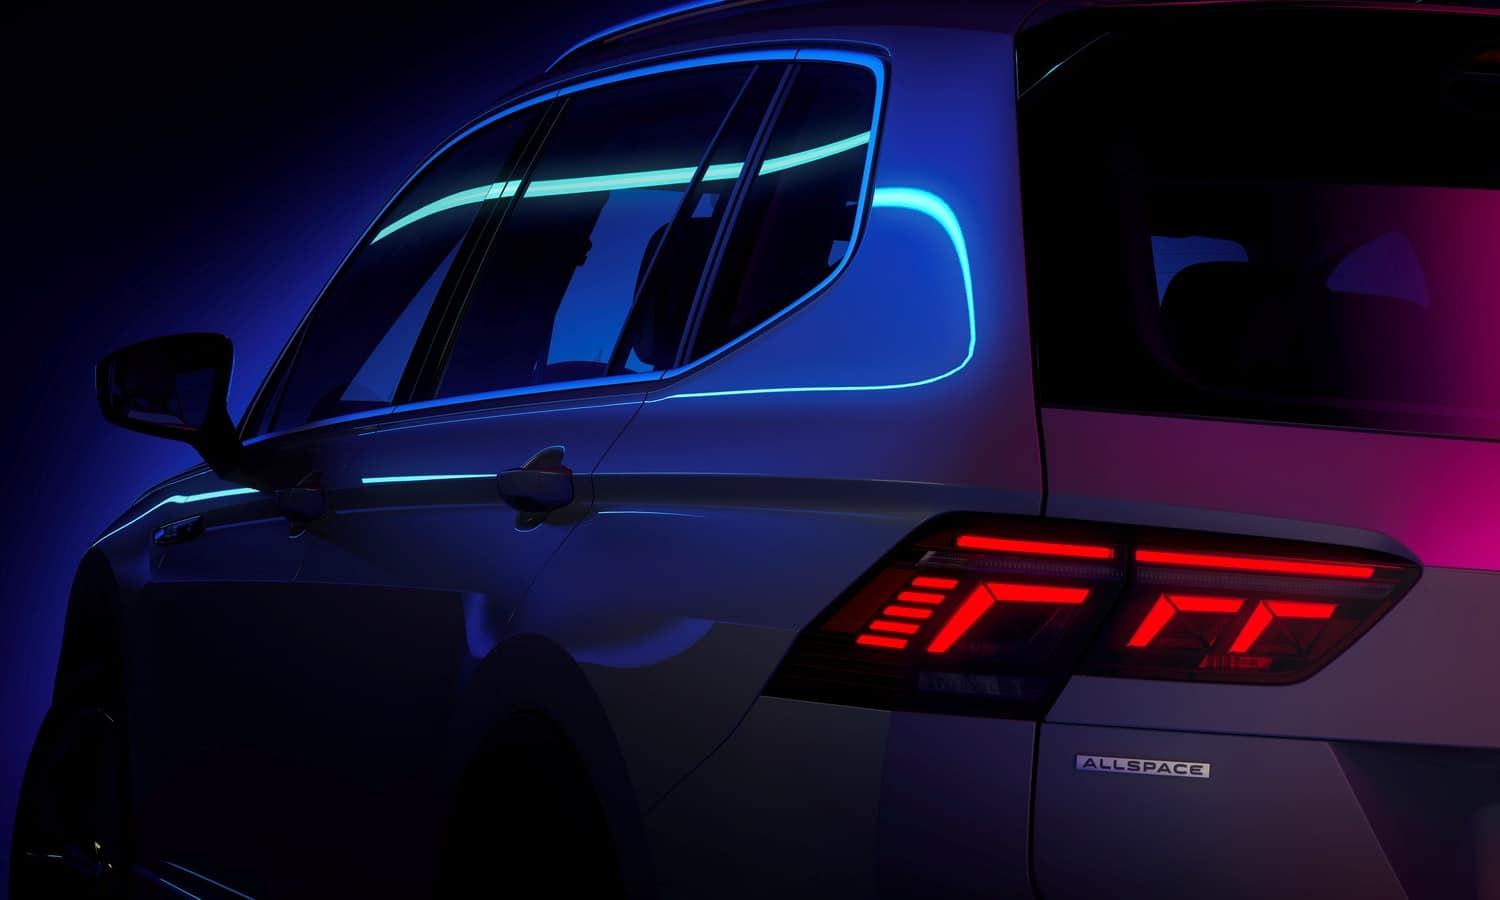 The new Volkswagen Tiguan Allspace is gearing up for its world premiere